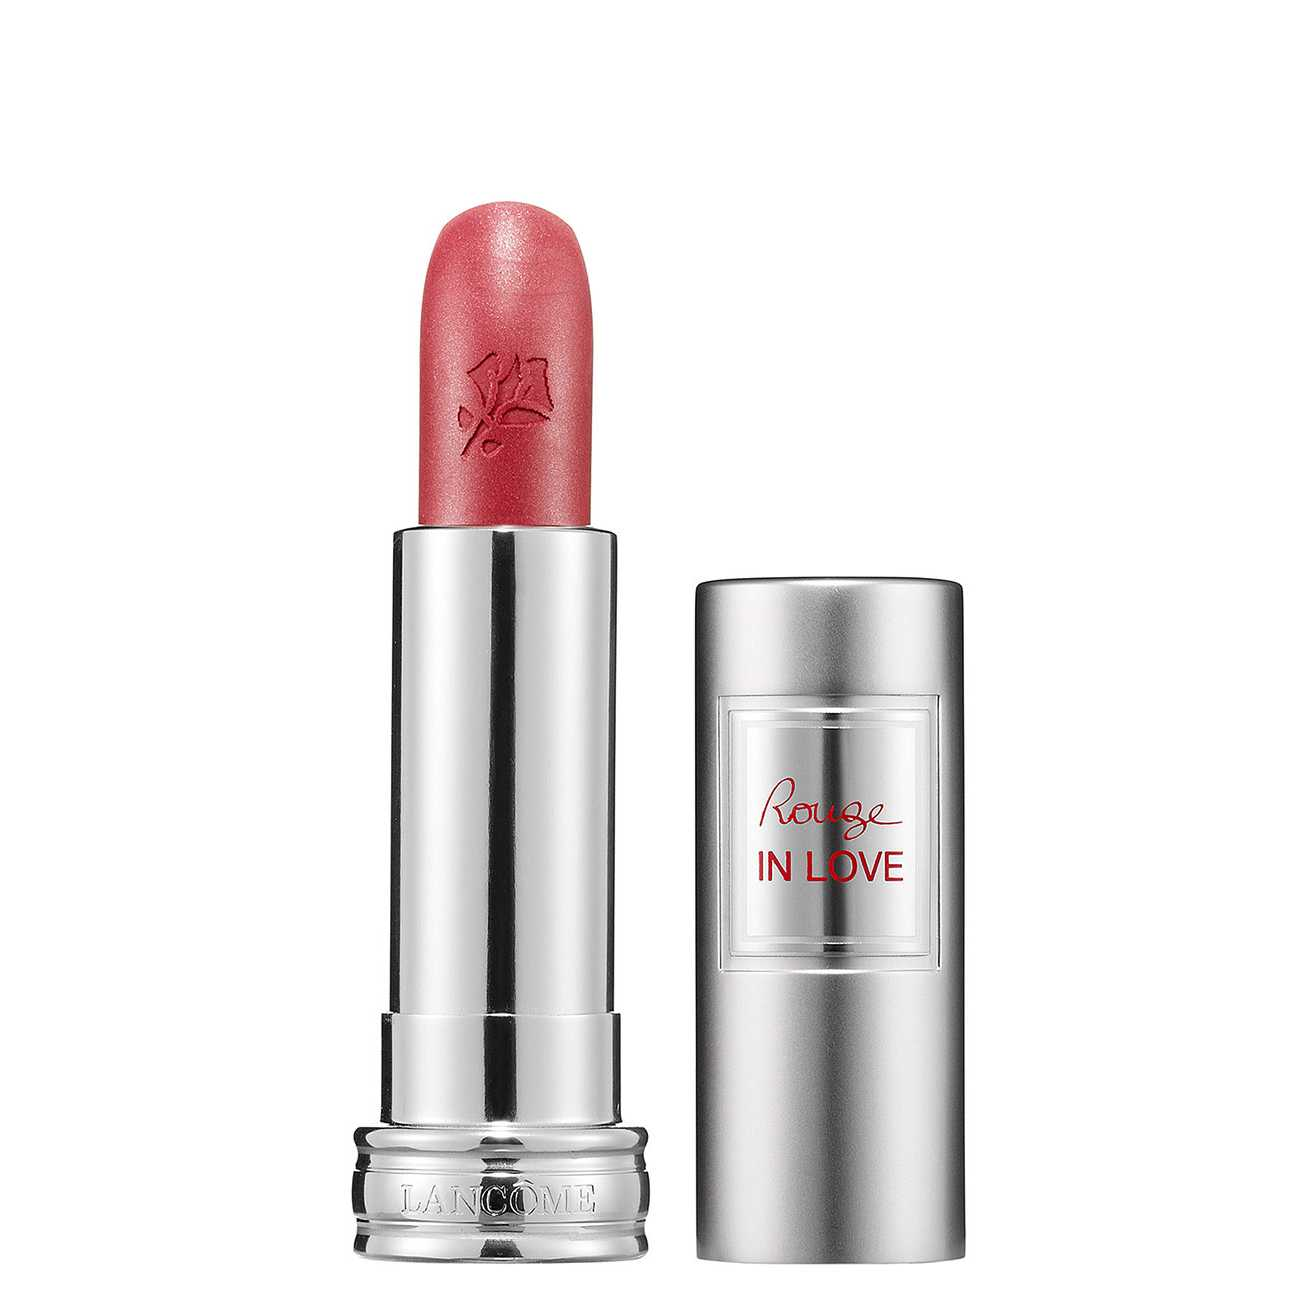 Rouge In Love 4 G Rosy Pink 353 Lancôme imagine 2021 bestvalue.eu